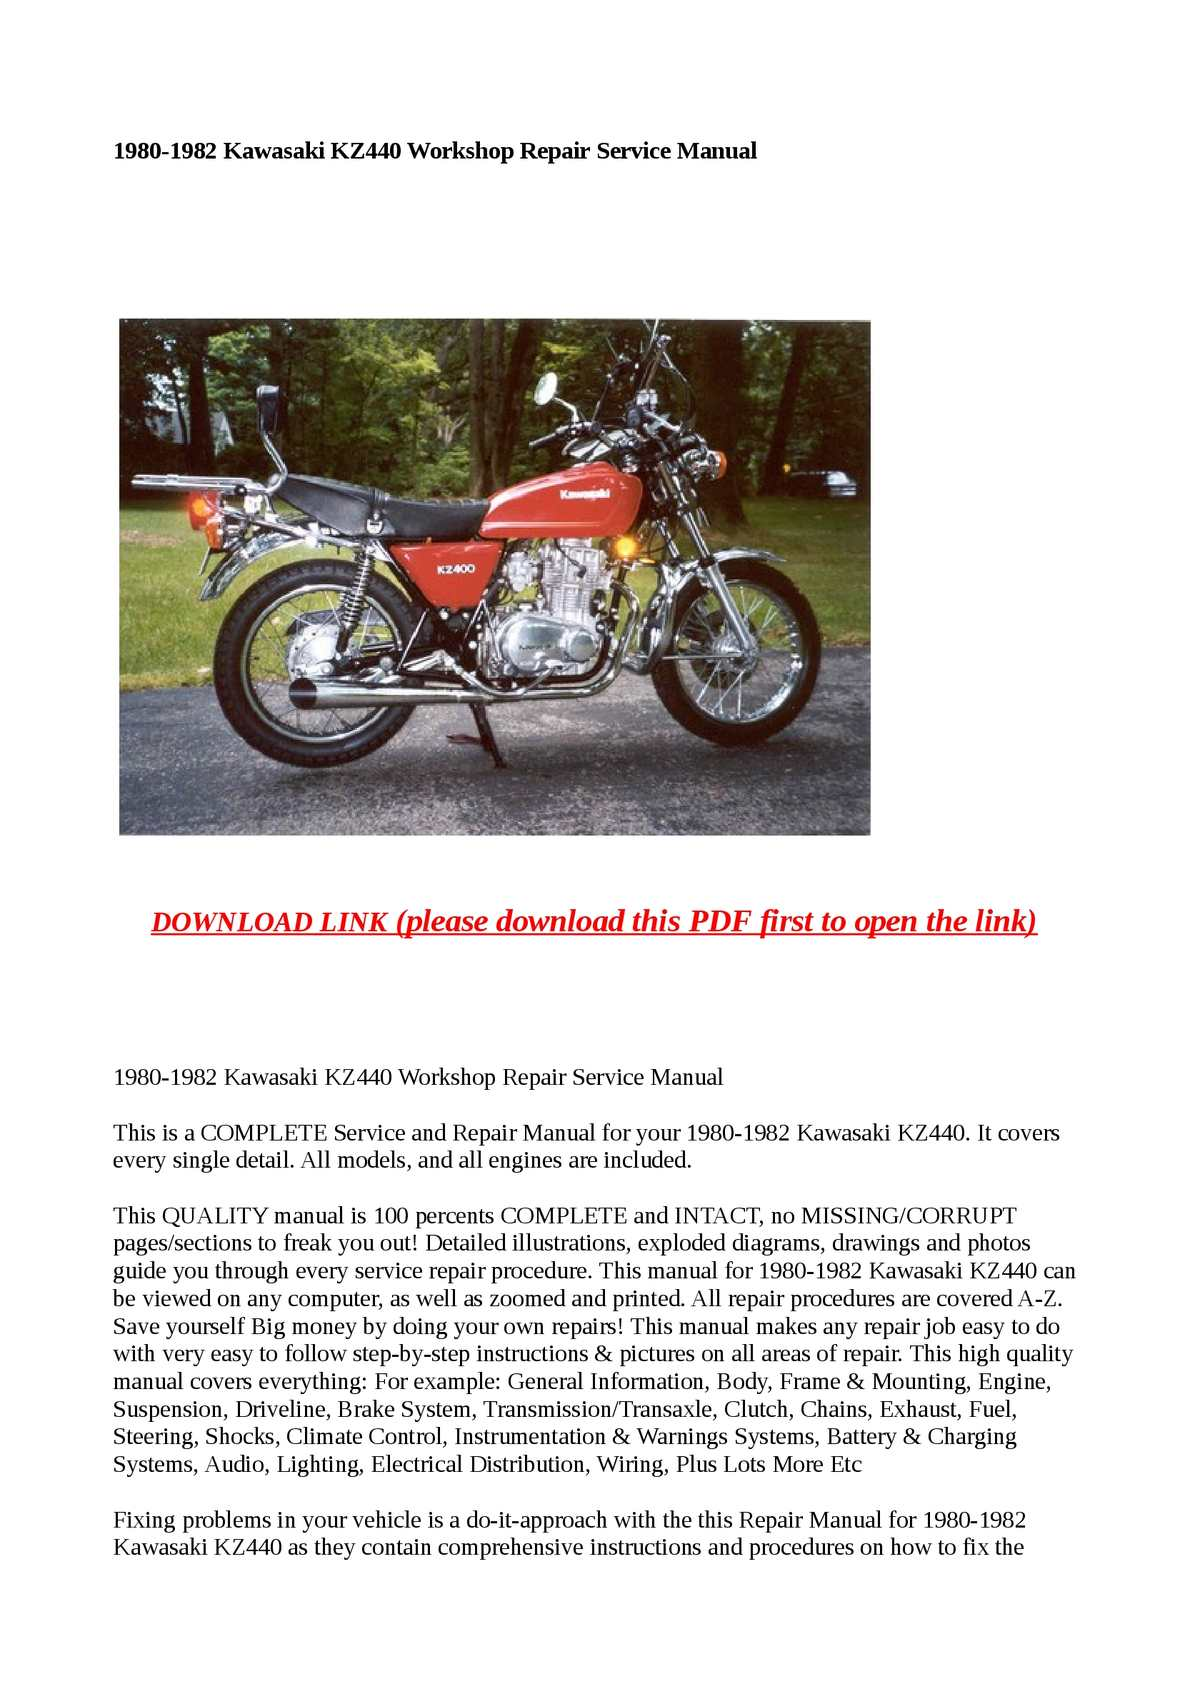 1980 Kawasaki Kz1300 Wiring Harness Diagram Will Be A Thing Kz440 Lights 41 1982 Motorcycles